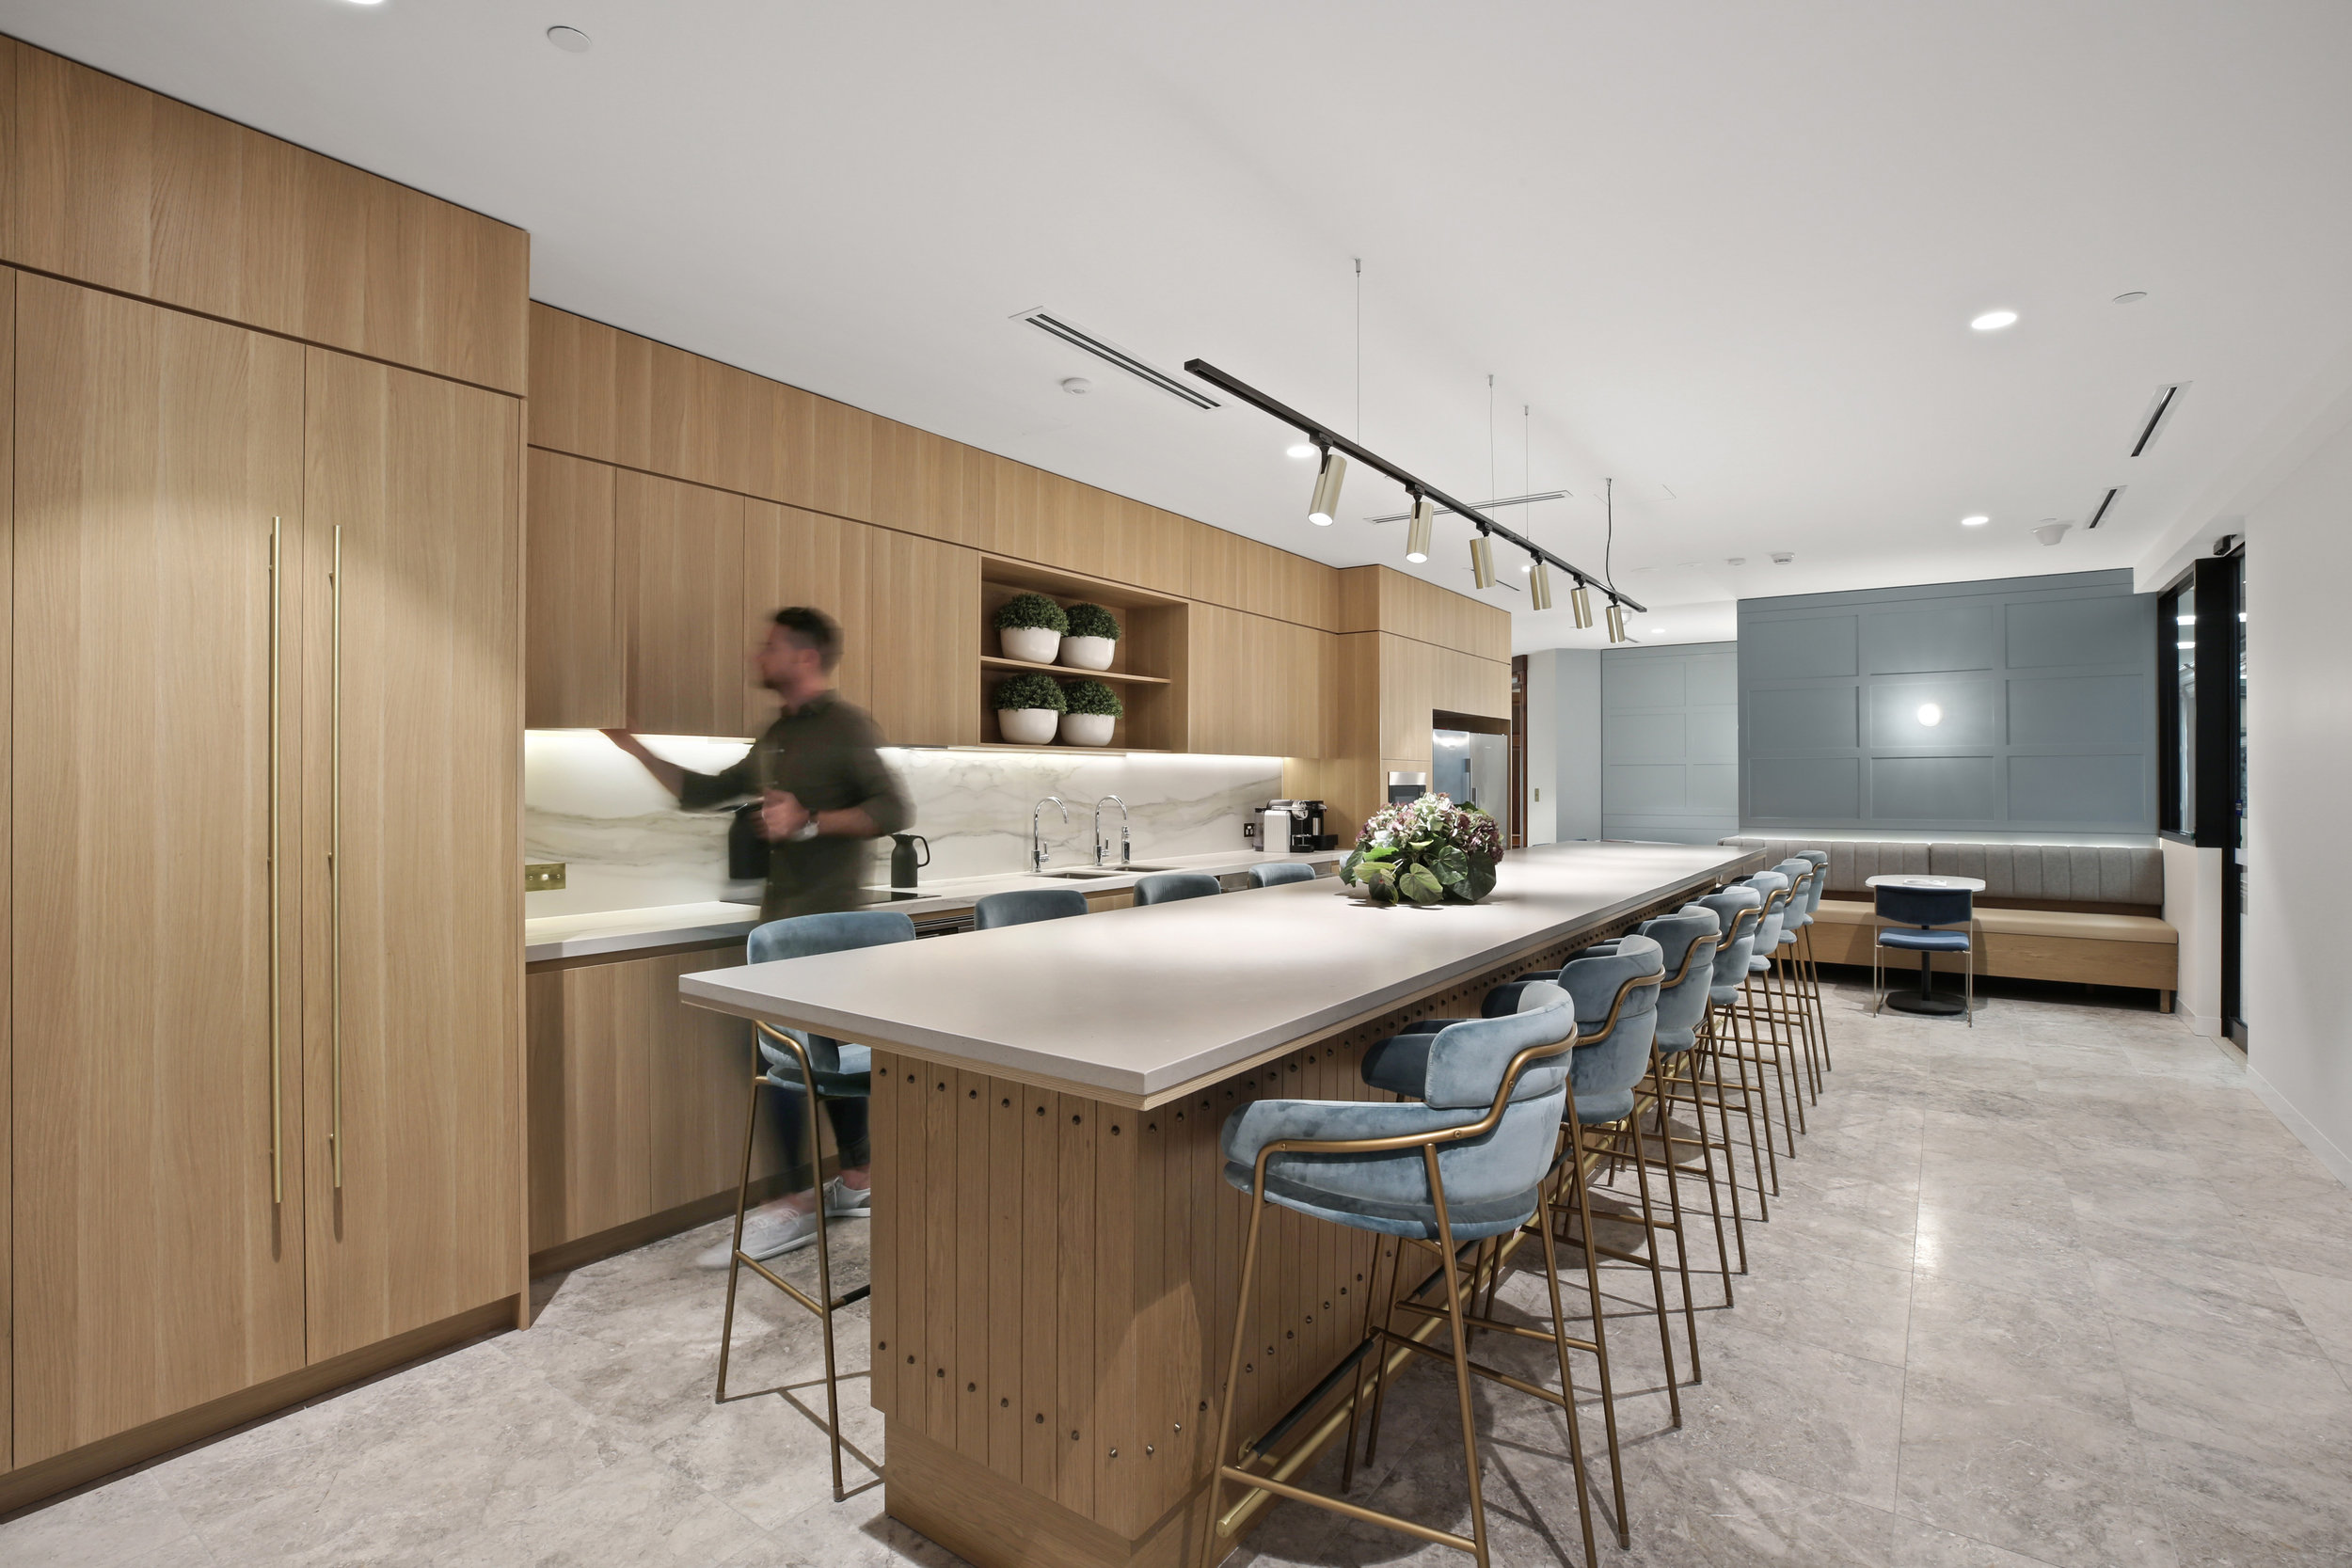 Valmont_KKR_1_Macquarie_Square_High_Kitchen_2.jpg